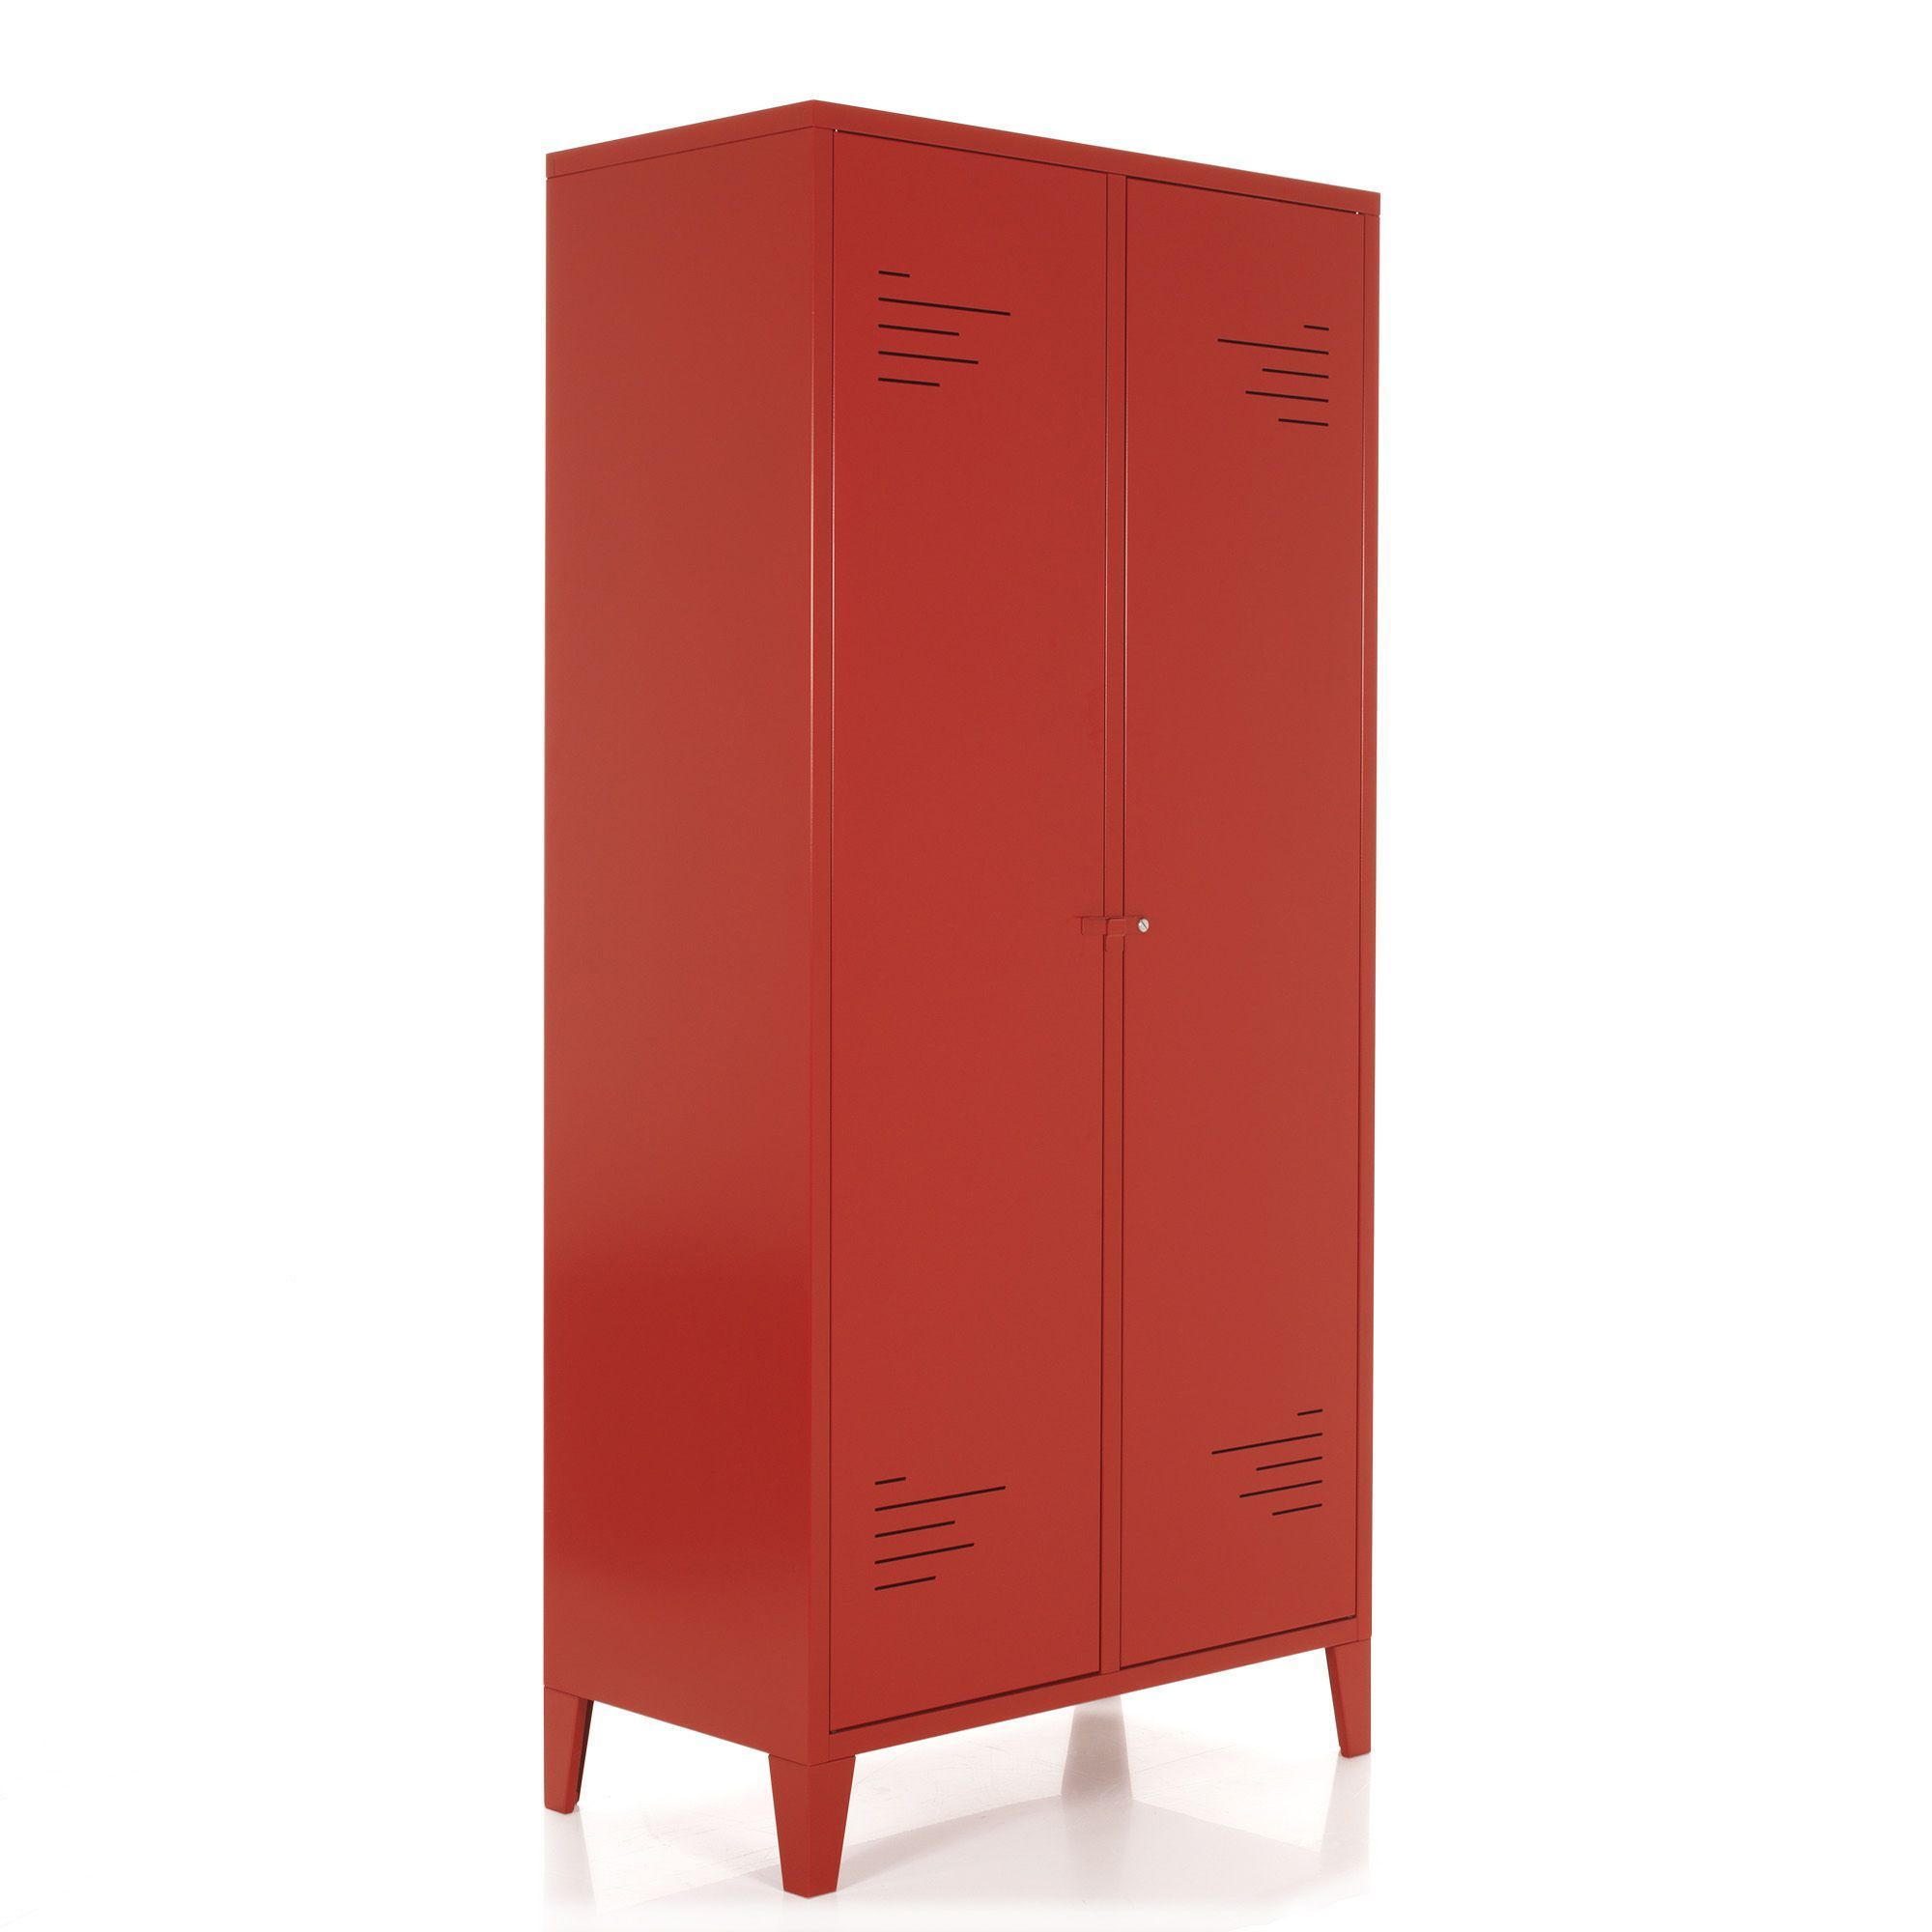 armoire 2 portes en m tal rouge lofter armoires portes ouvrantes armoires penderies. Black Bedroom Furniture Sets. Home Design Ideas